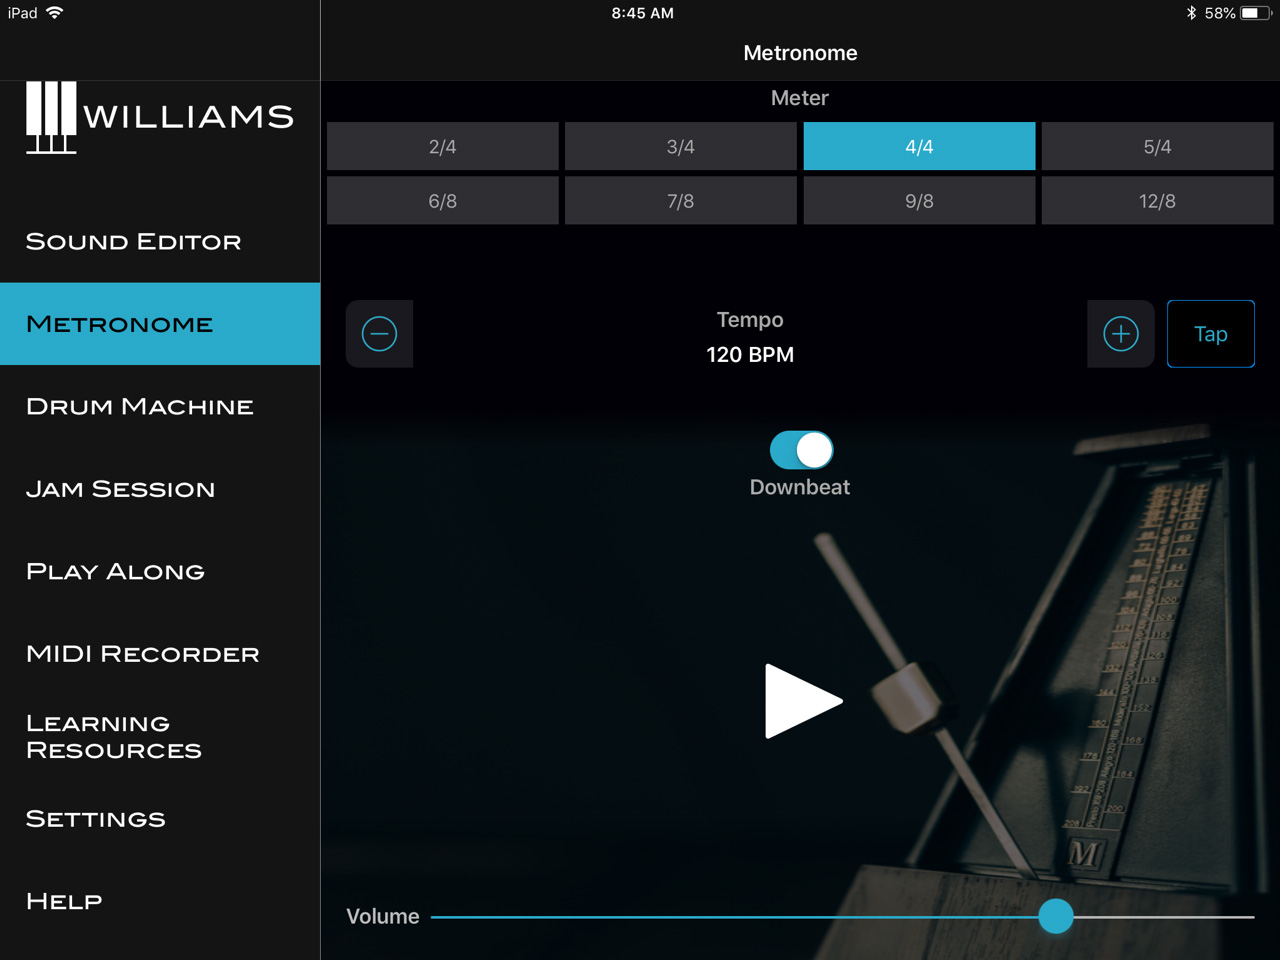 Williams App Metronome